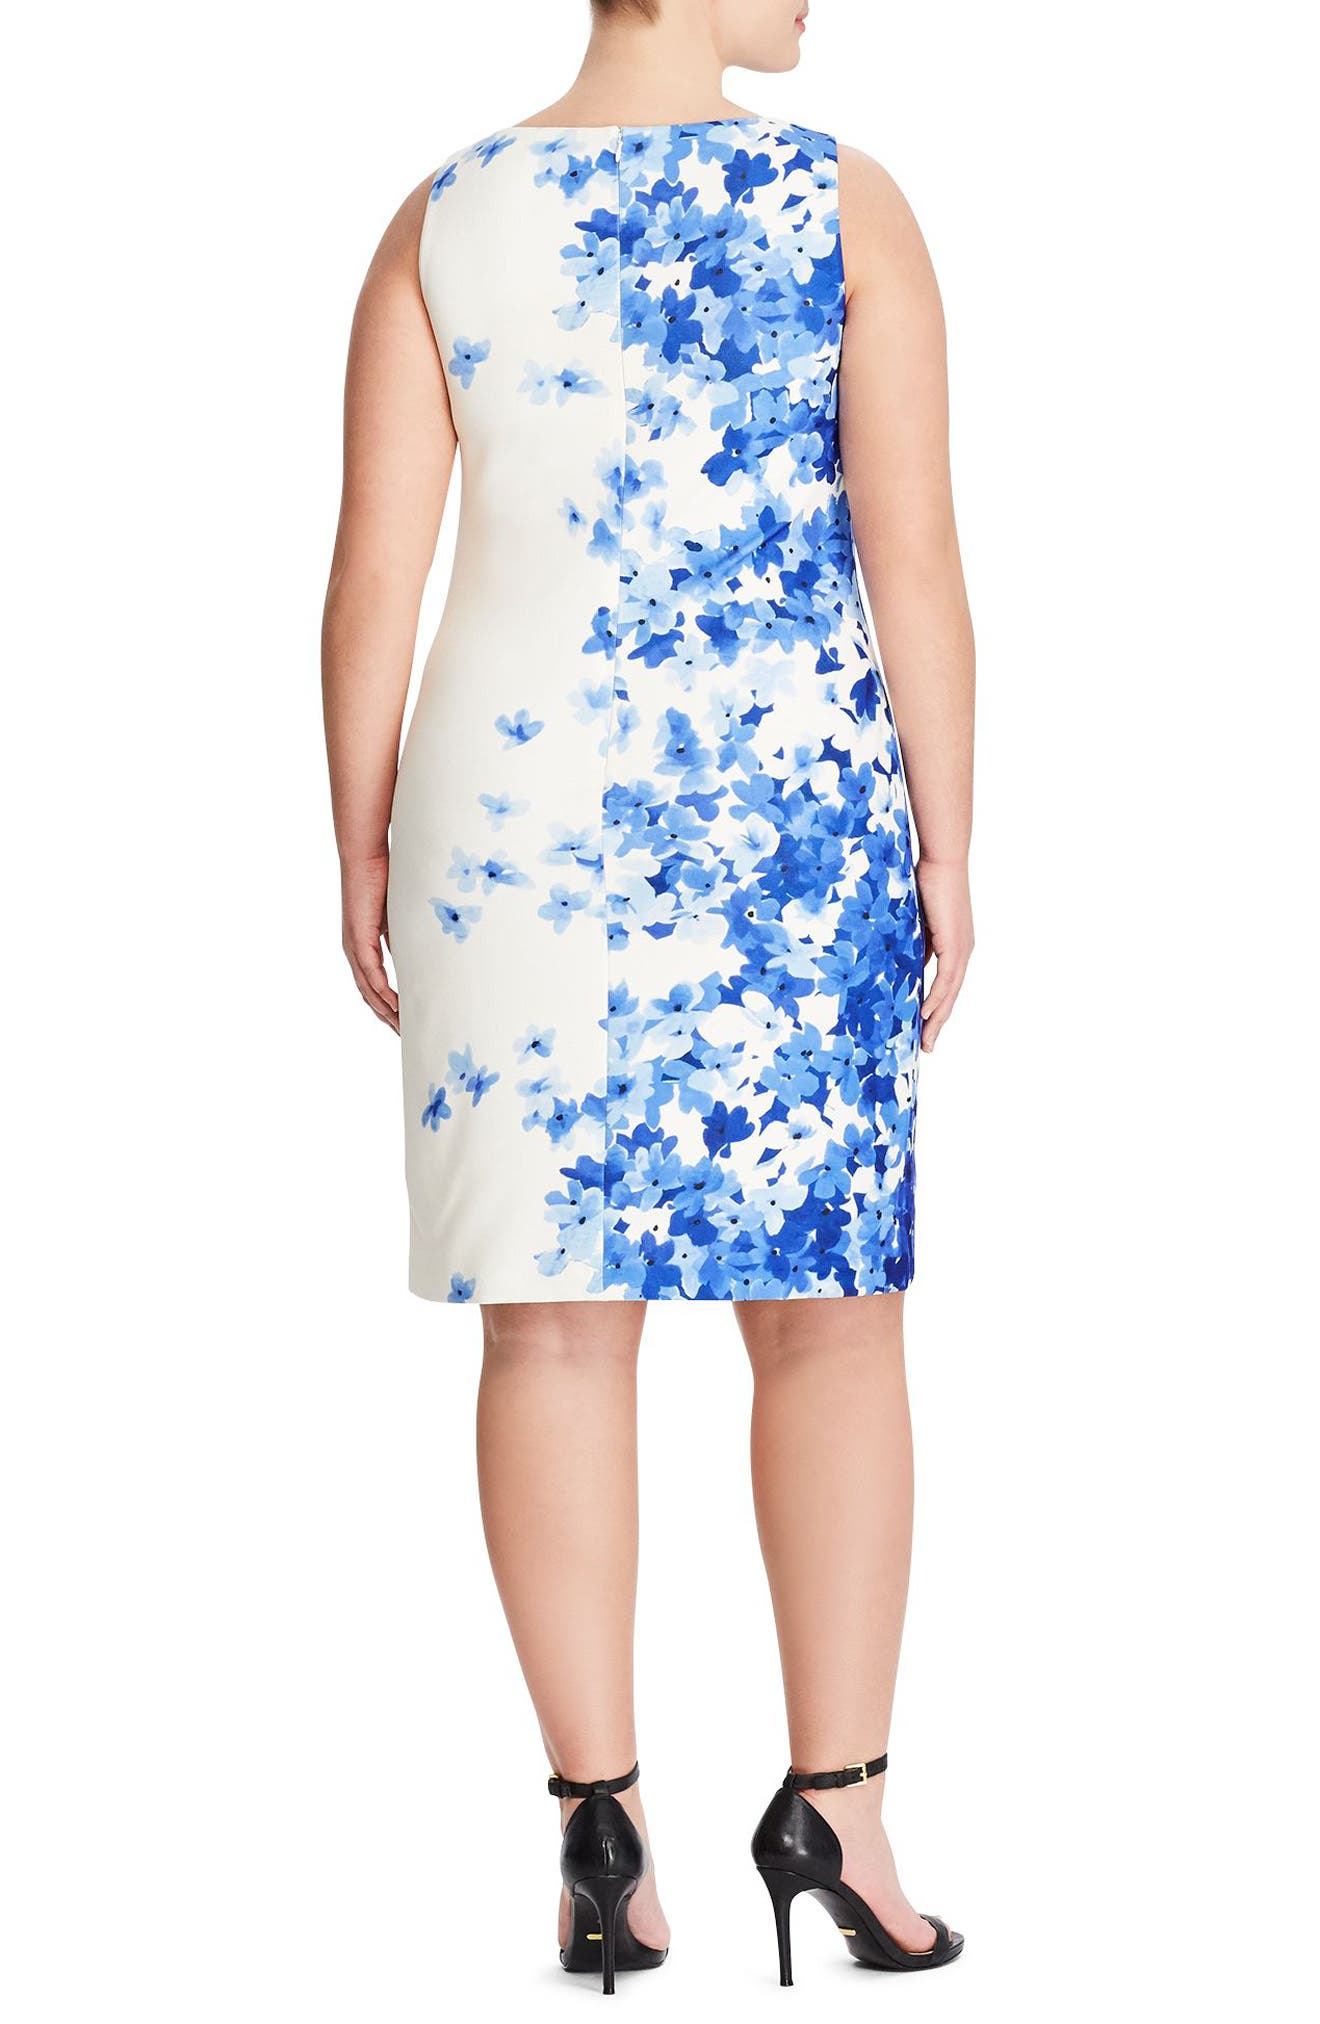 Toralina Caspian Sea Border Sheath Dress,                             Alternate thumbnail 2, color,                             Col. Cream-Blue-Multi